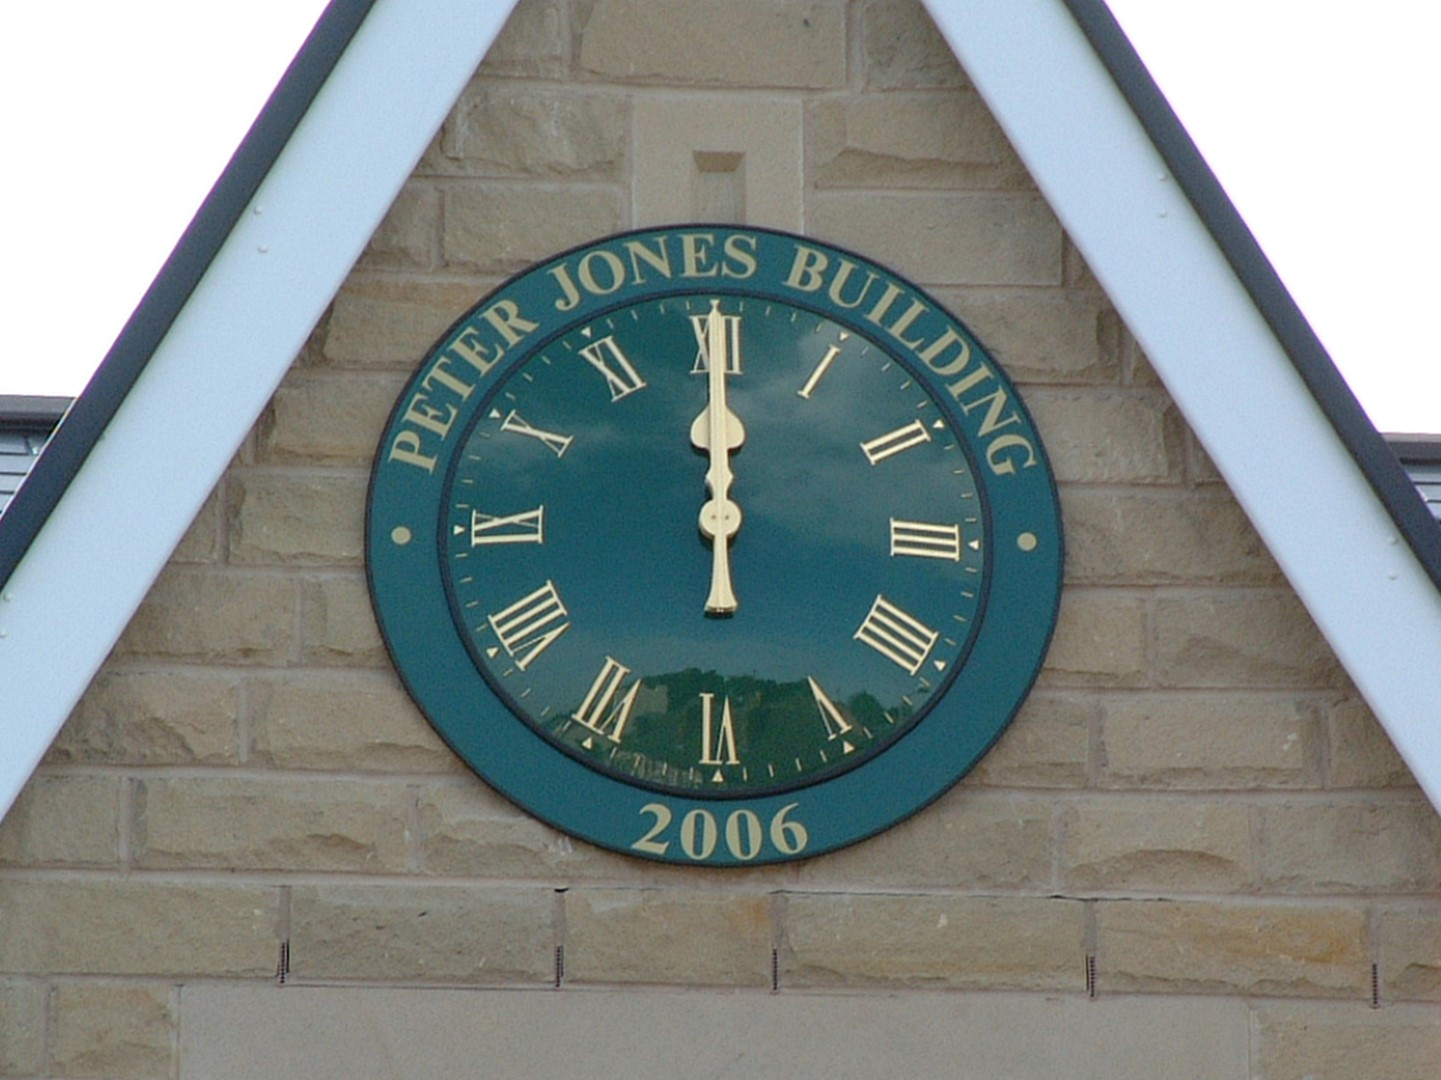 Exterior clock with signage